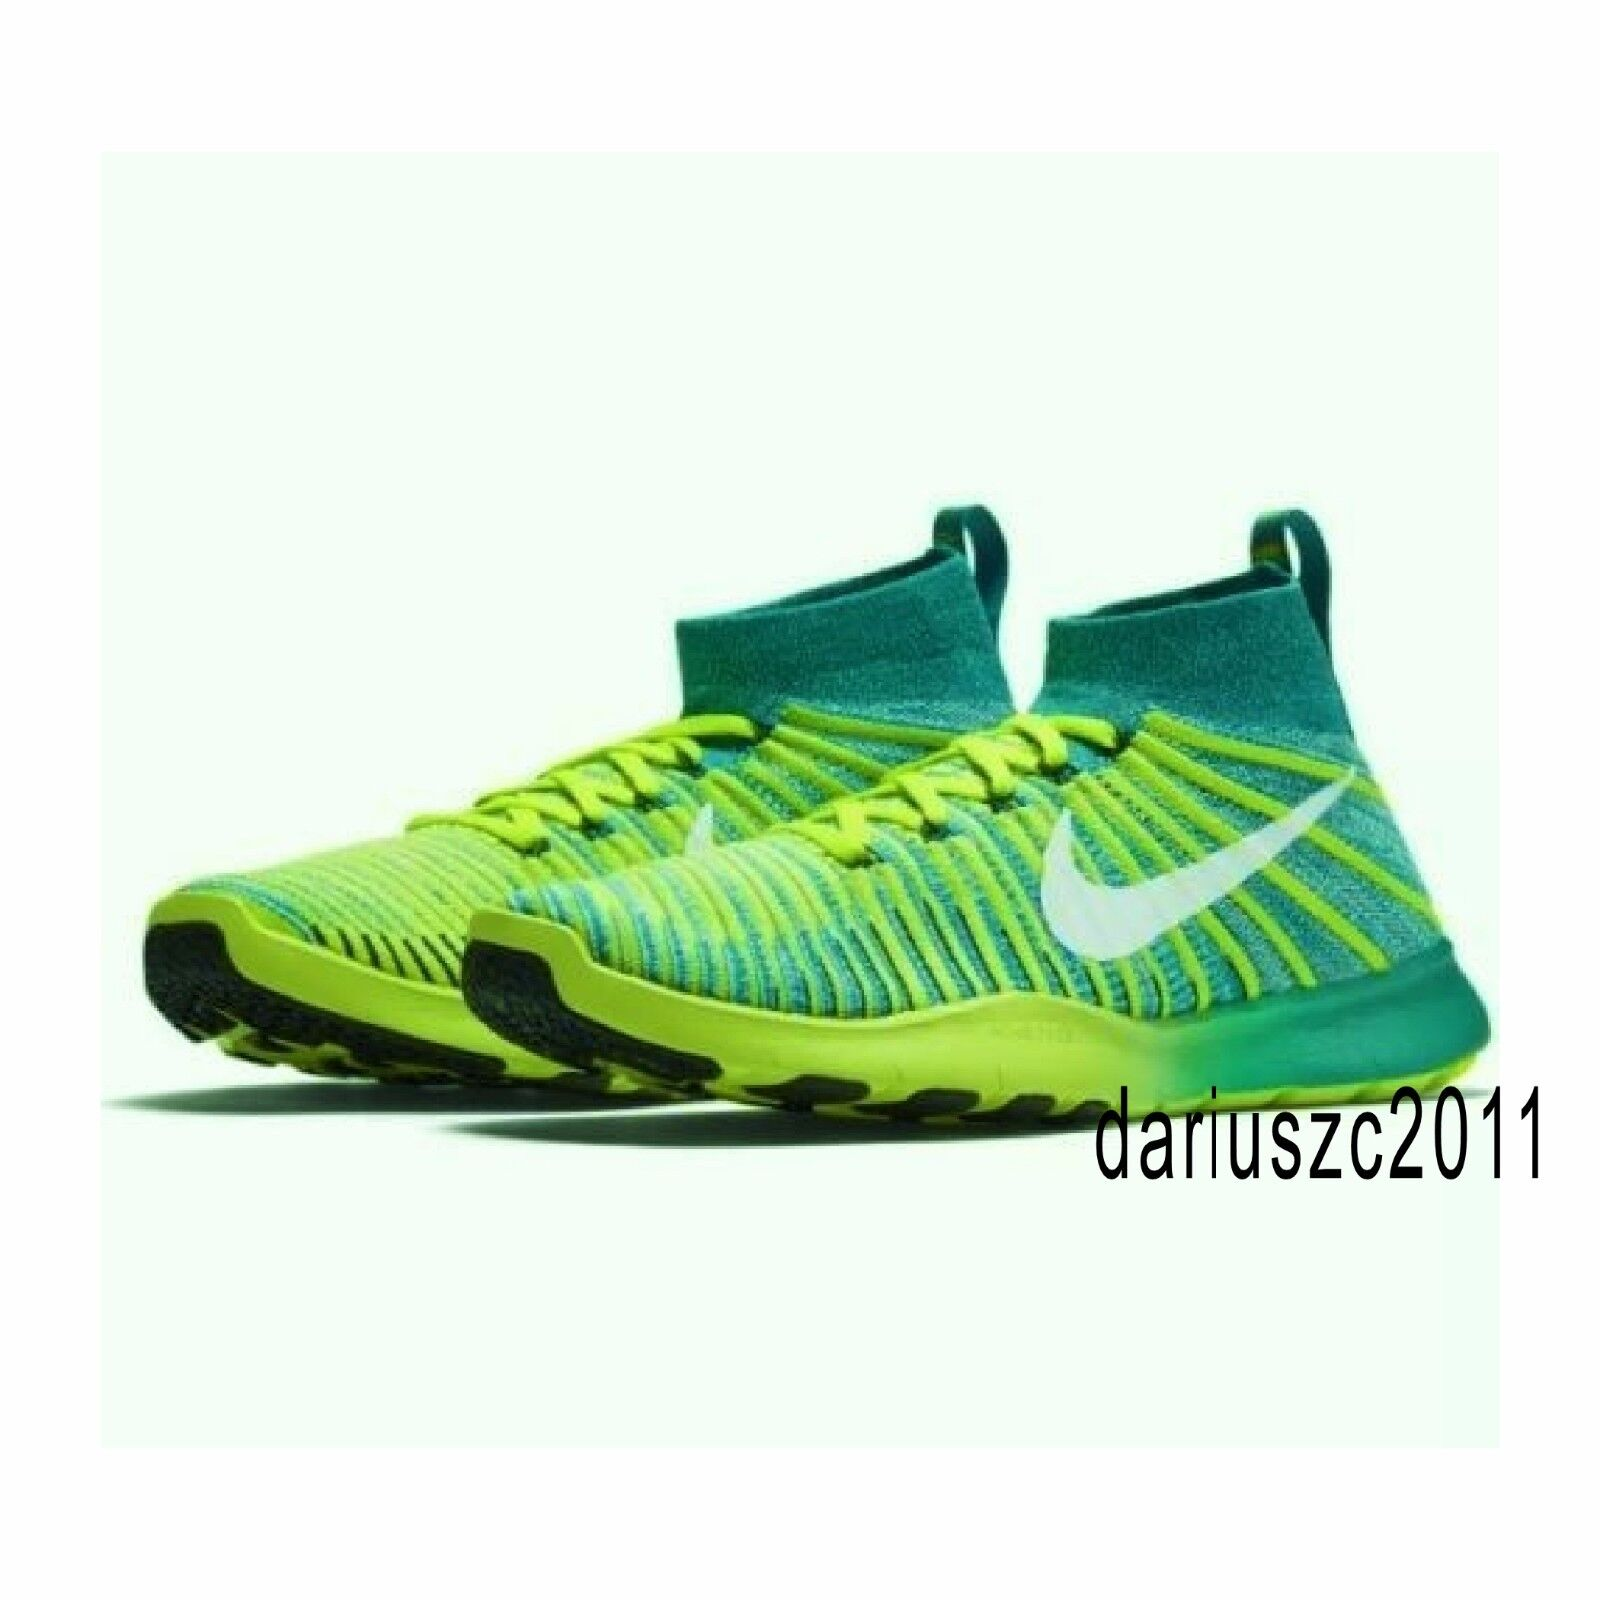 f1f4d1cdf60  150 Nike Free Train Force Flyknit Men s Athletic Shoes Shoes Shoes 11.5  Rio Teal 833275 c24e5c Nike Metcon 3 DSX Flyknit Trainers Volt Black White  ...